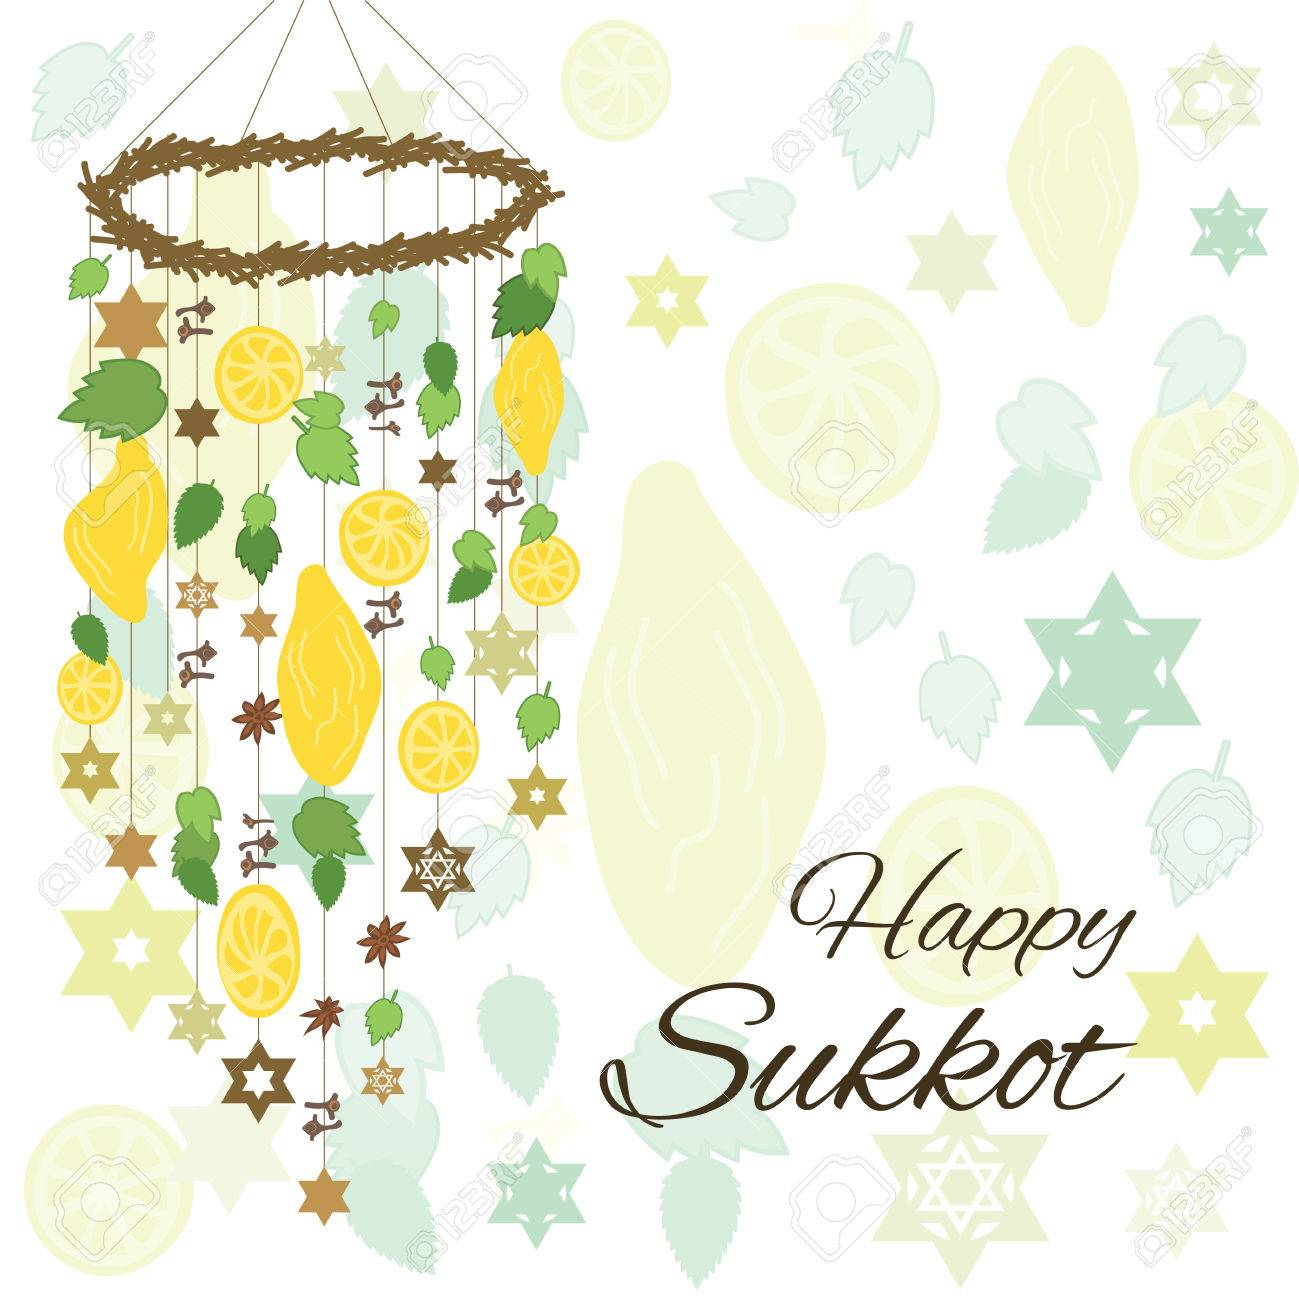 Vector Illustration Of Greeting Card For Sukkot Jewish Holiday With